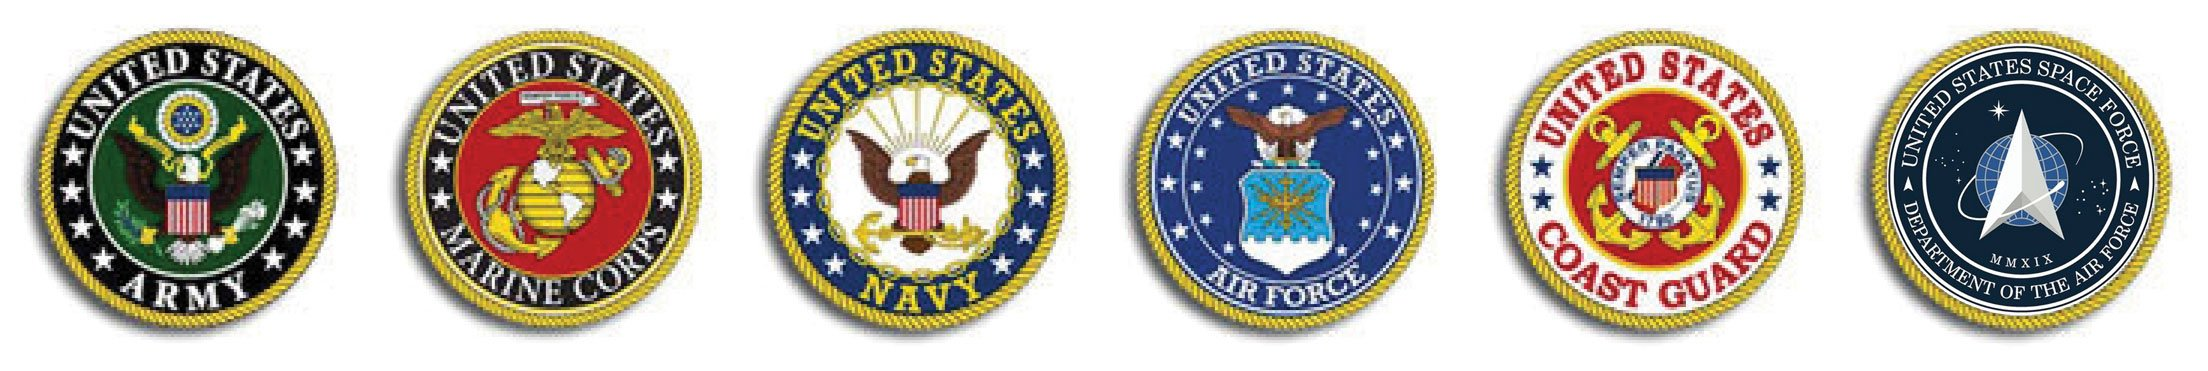 Logos for the military branches of the United States of America.